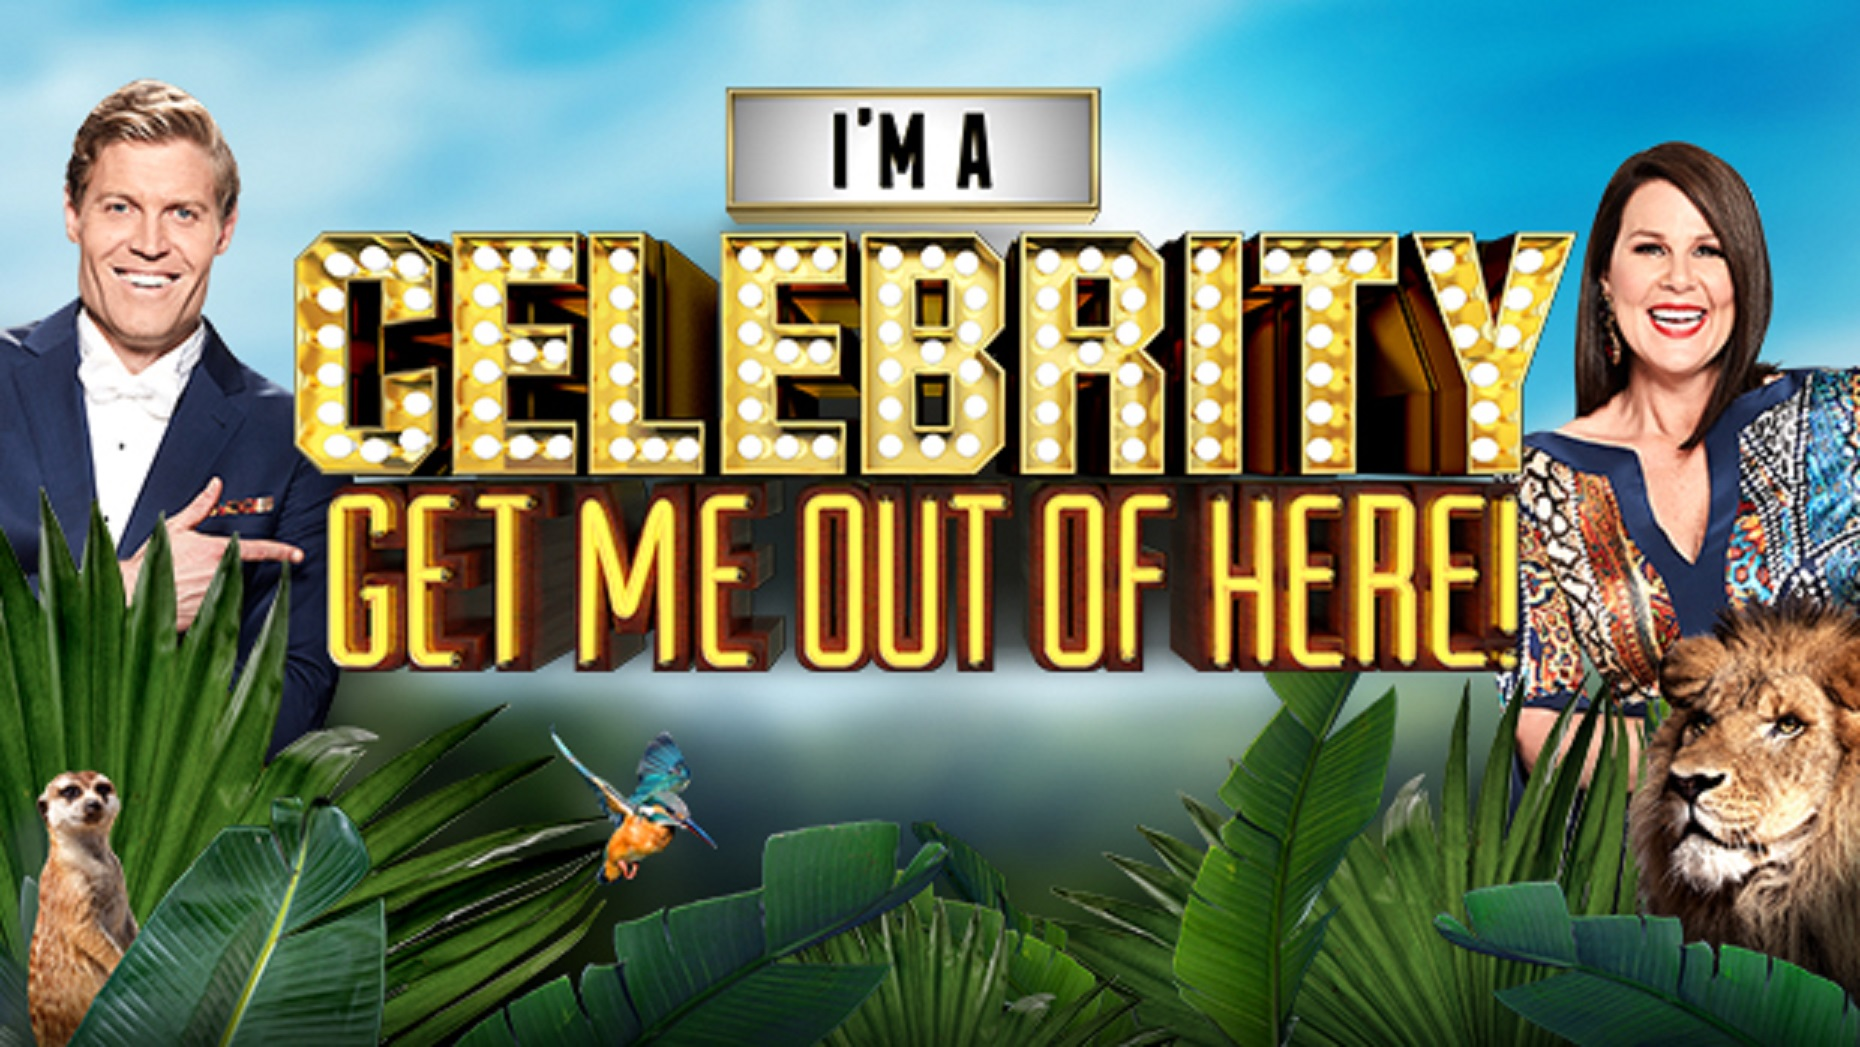 I M A Celebrity Get Me Out Of Here Tv Series 2015 Imdb